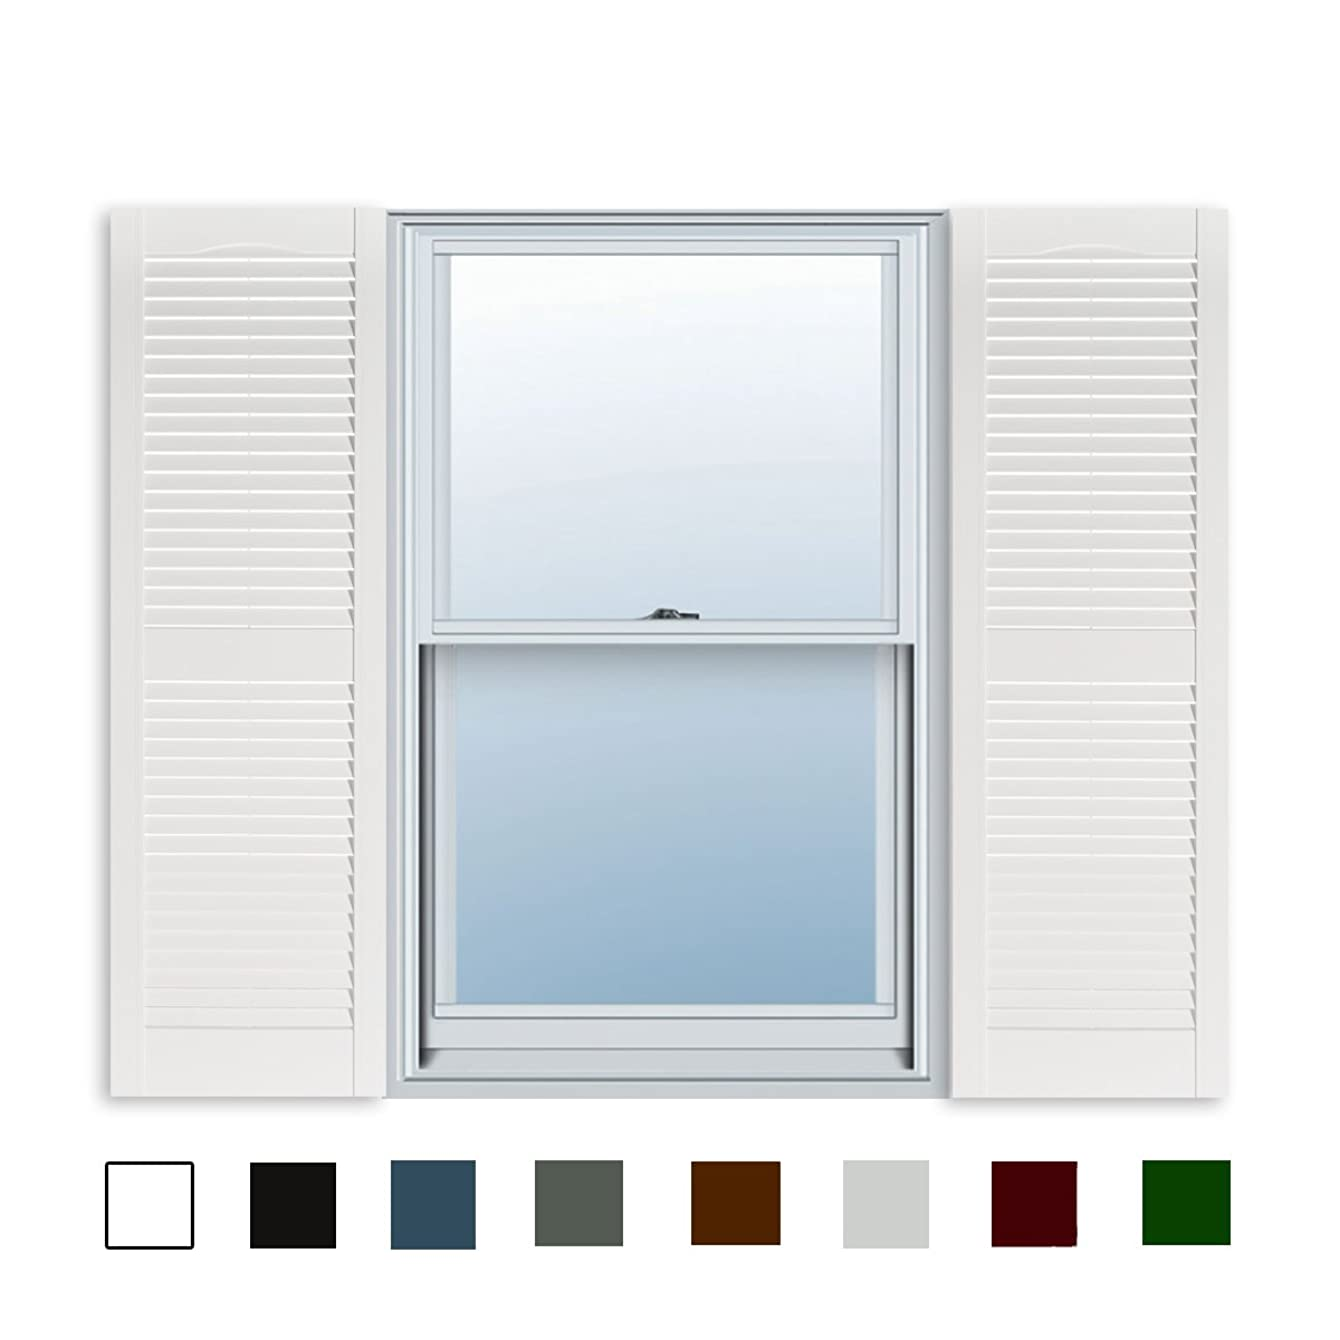 15 Inch x 59 Inch Standard Louver Exterior Vinyl Window Shutters, White (Pair)